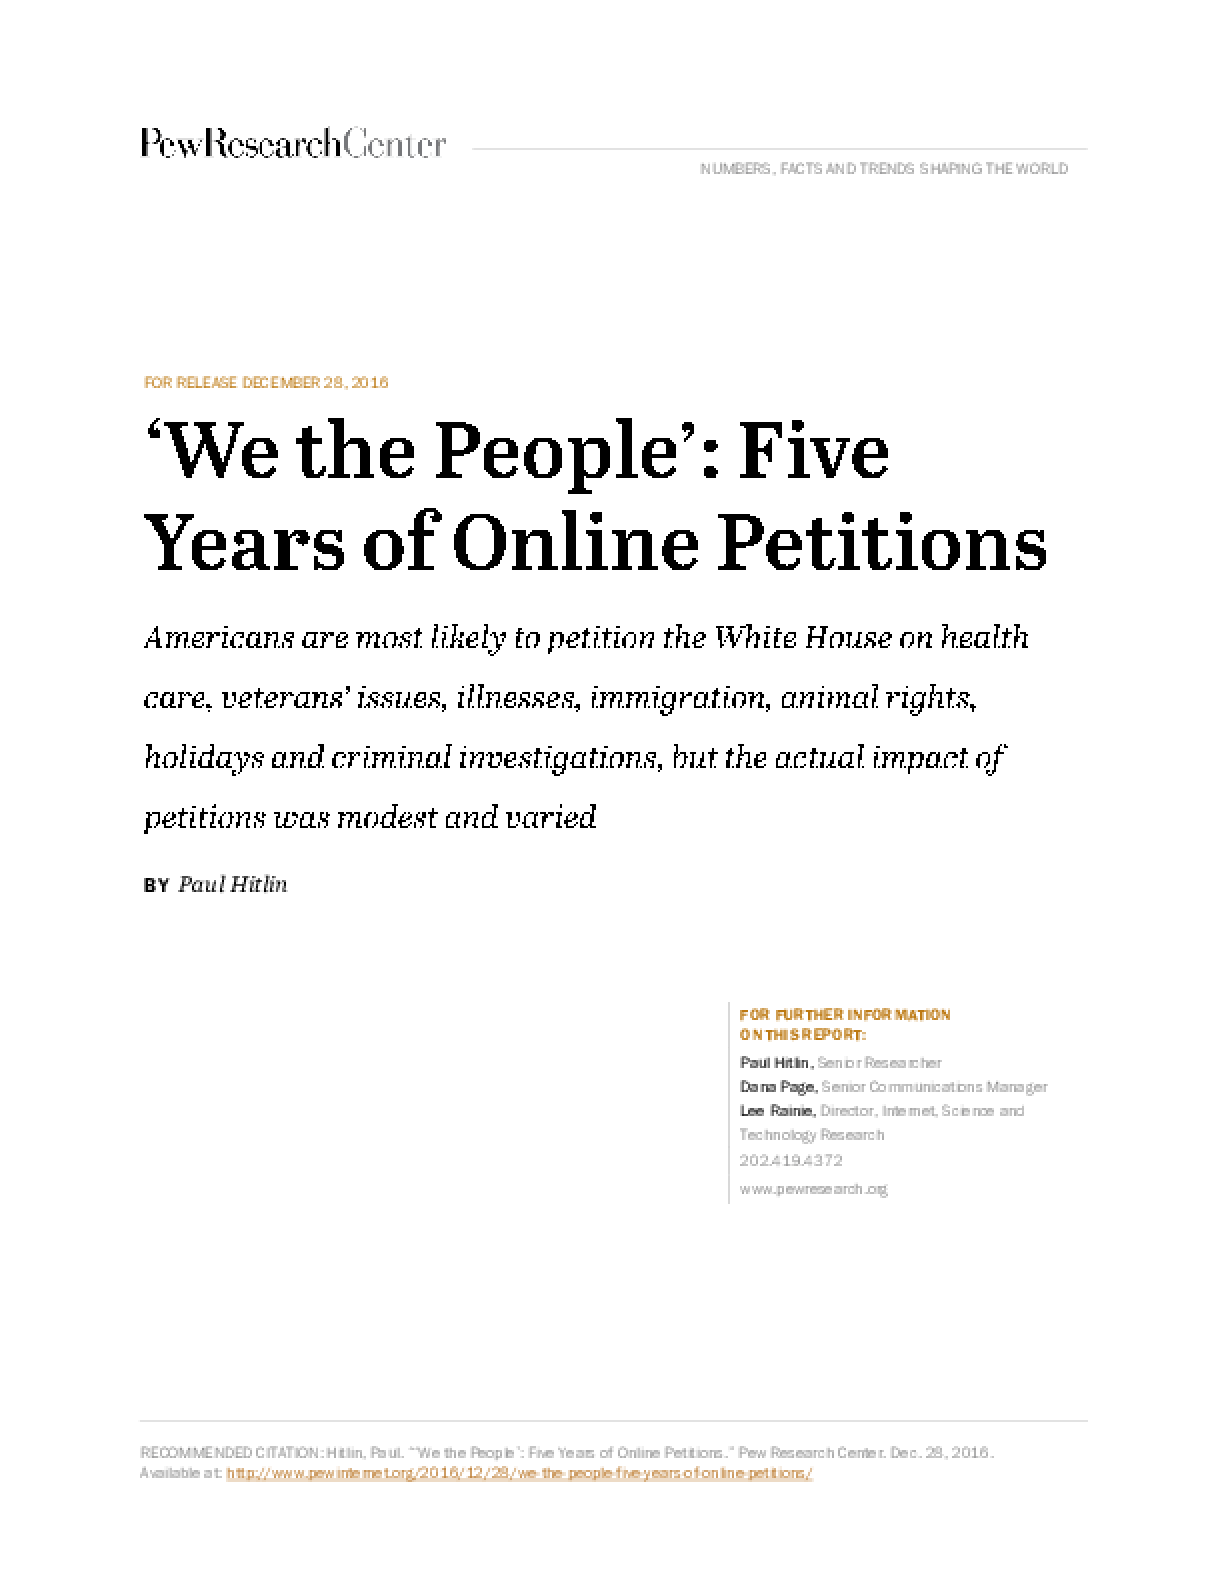 We the People': Five Years of Online Petitions